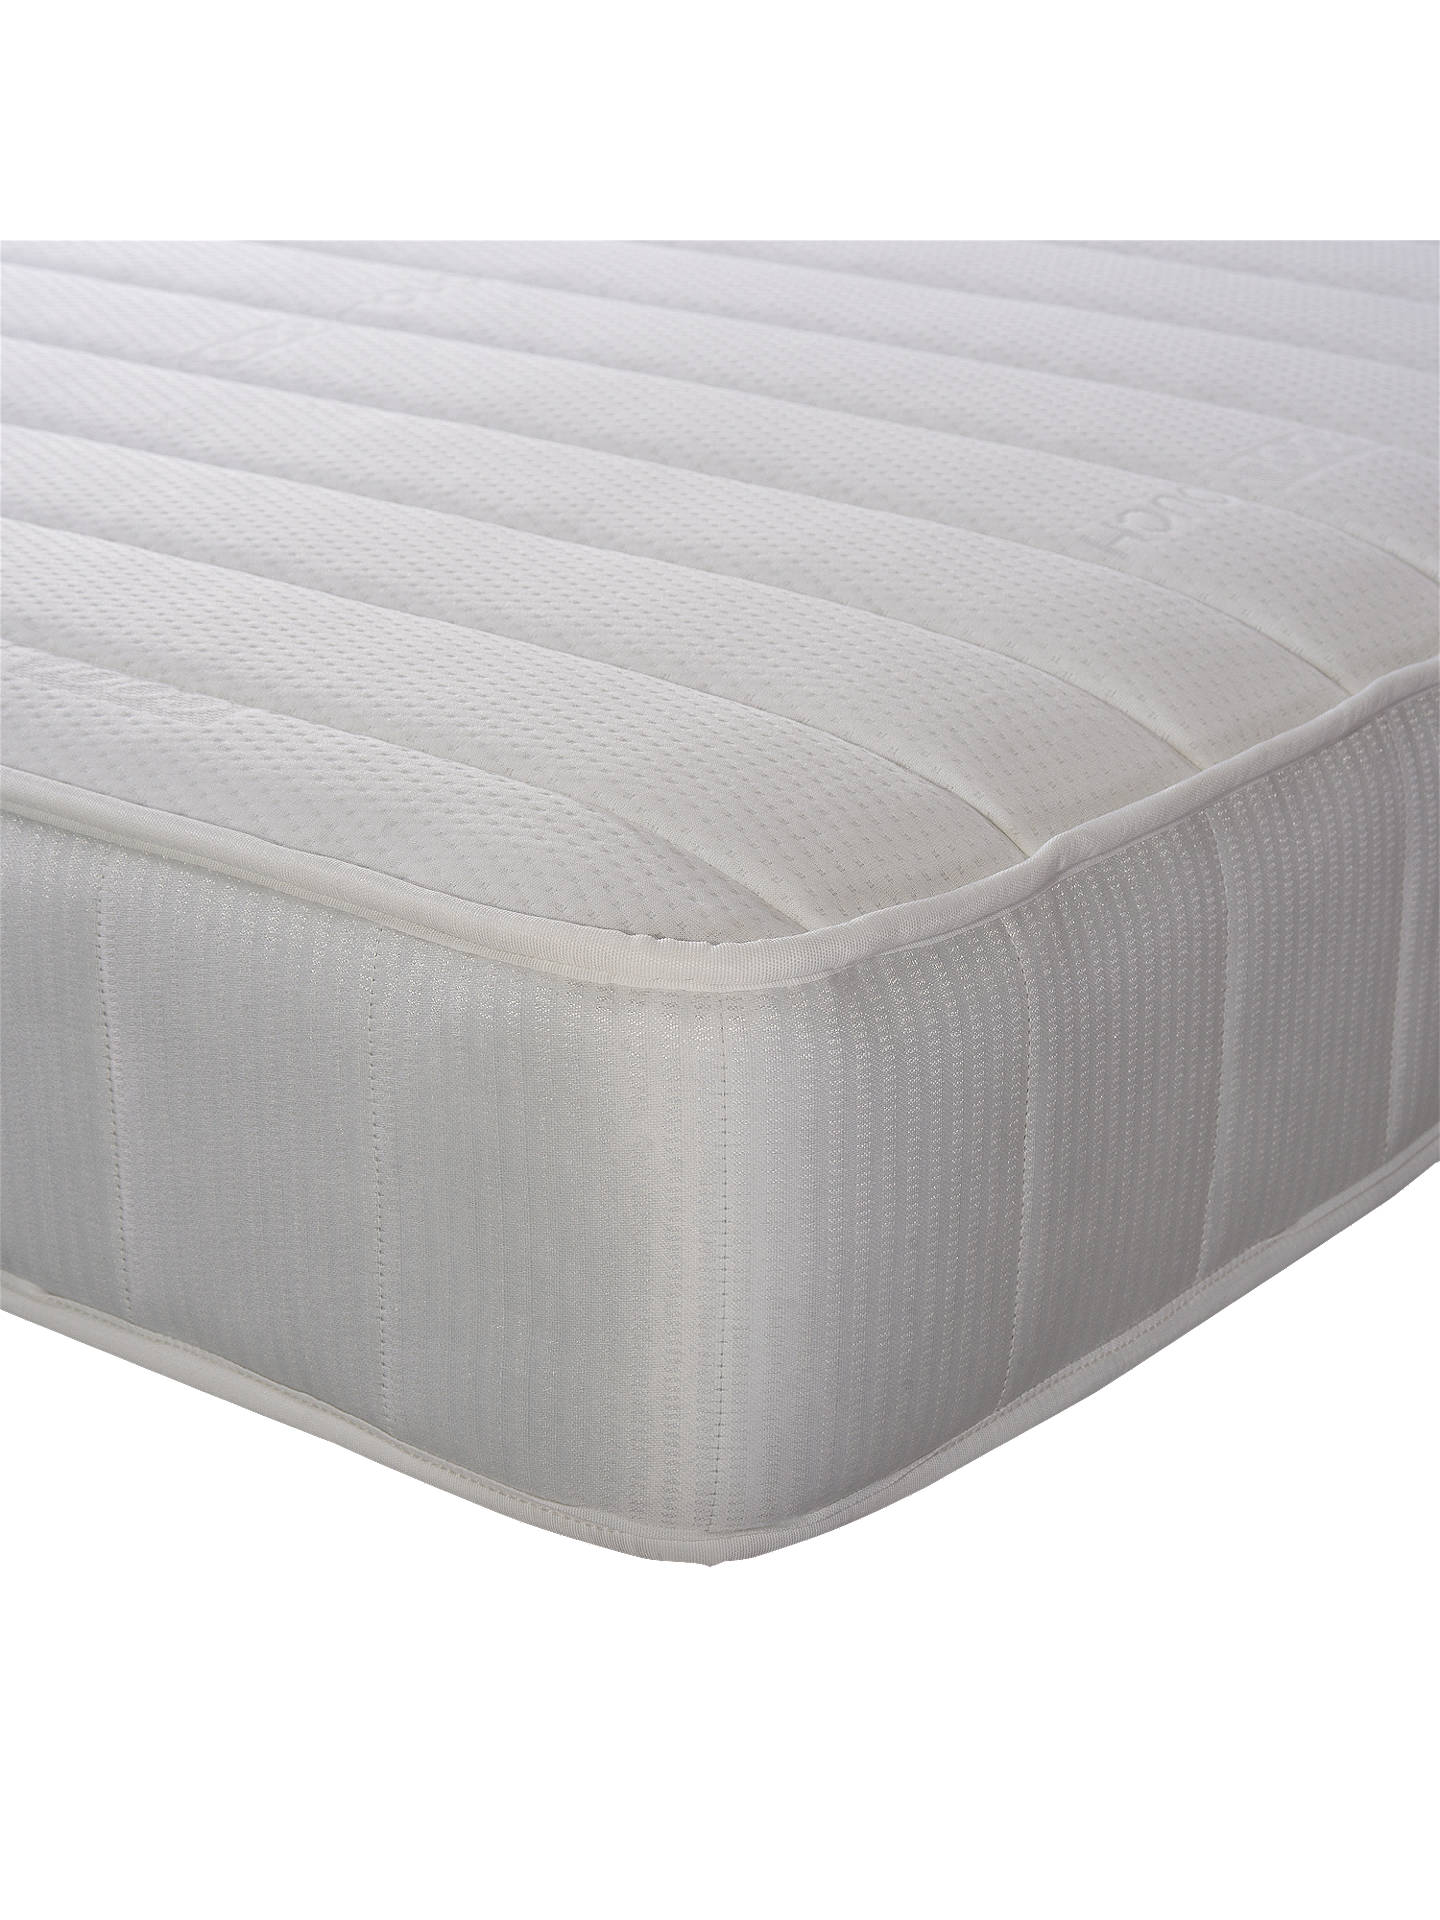 BuyJohn Lewis & Partners Essentials Collection Pocket 1000 Luxury, Medium Tension, Pocket Spring Mattress, Small Double Online at johnlewis.com